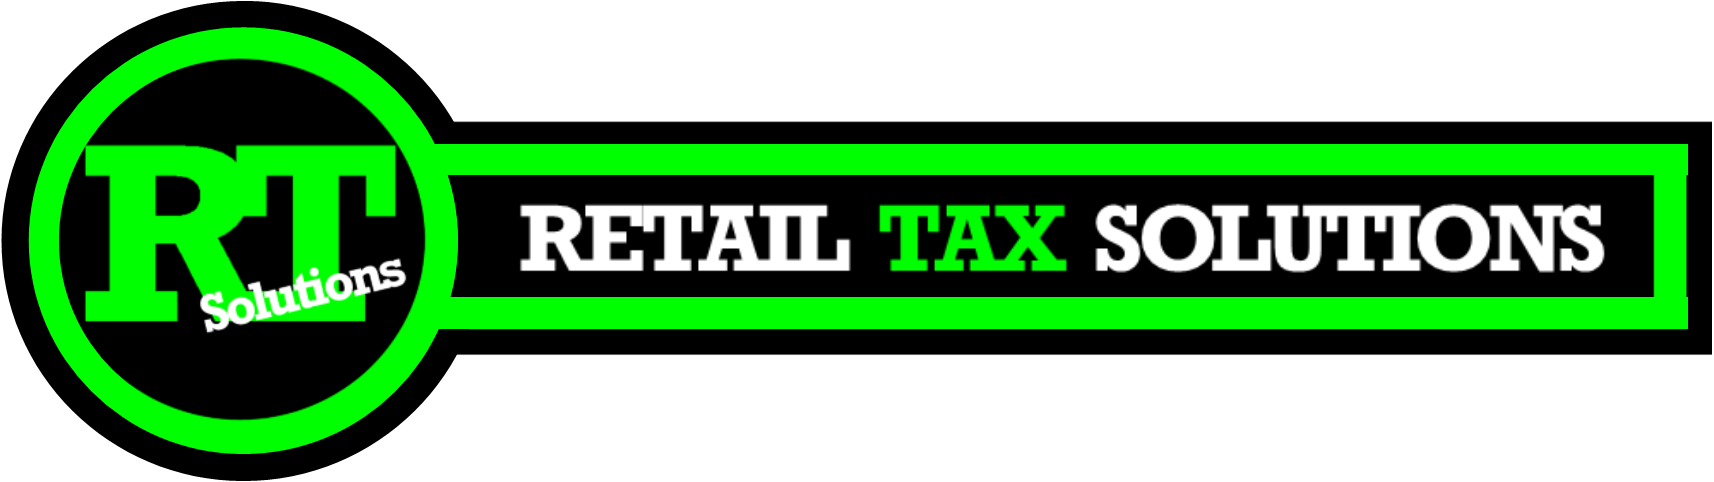 Retail Tax Solutions